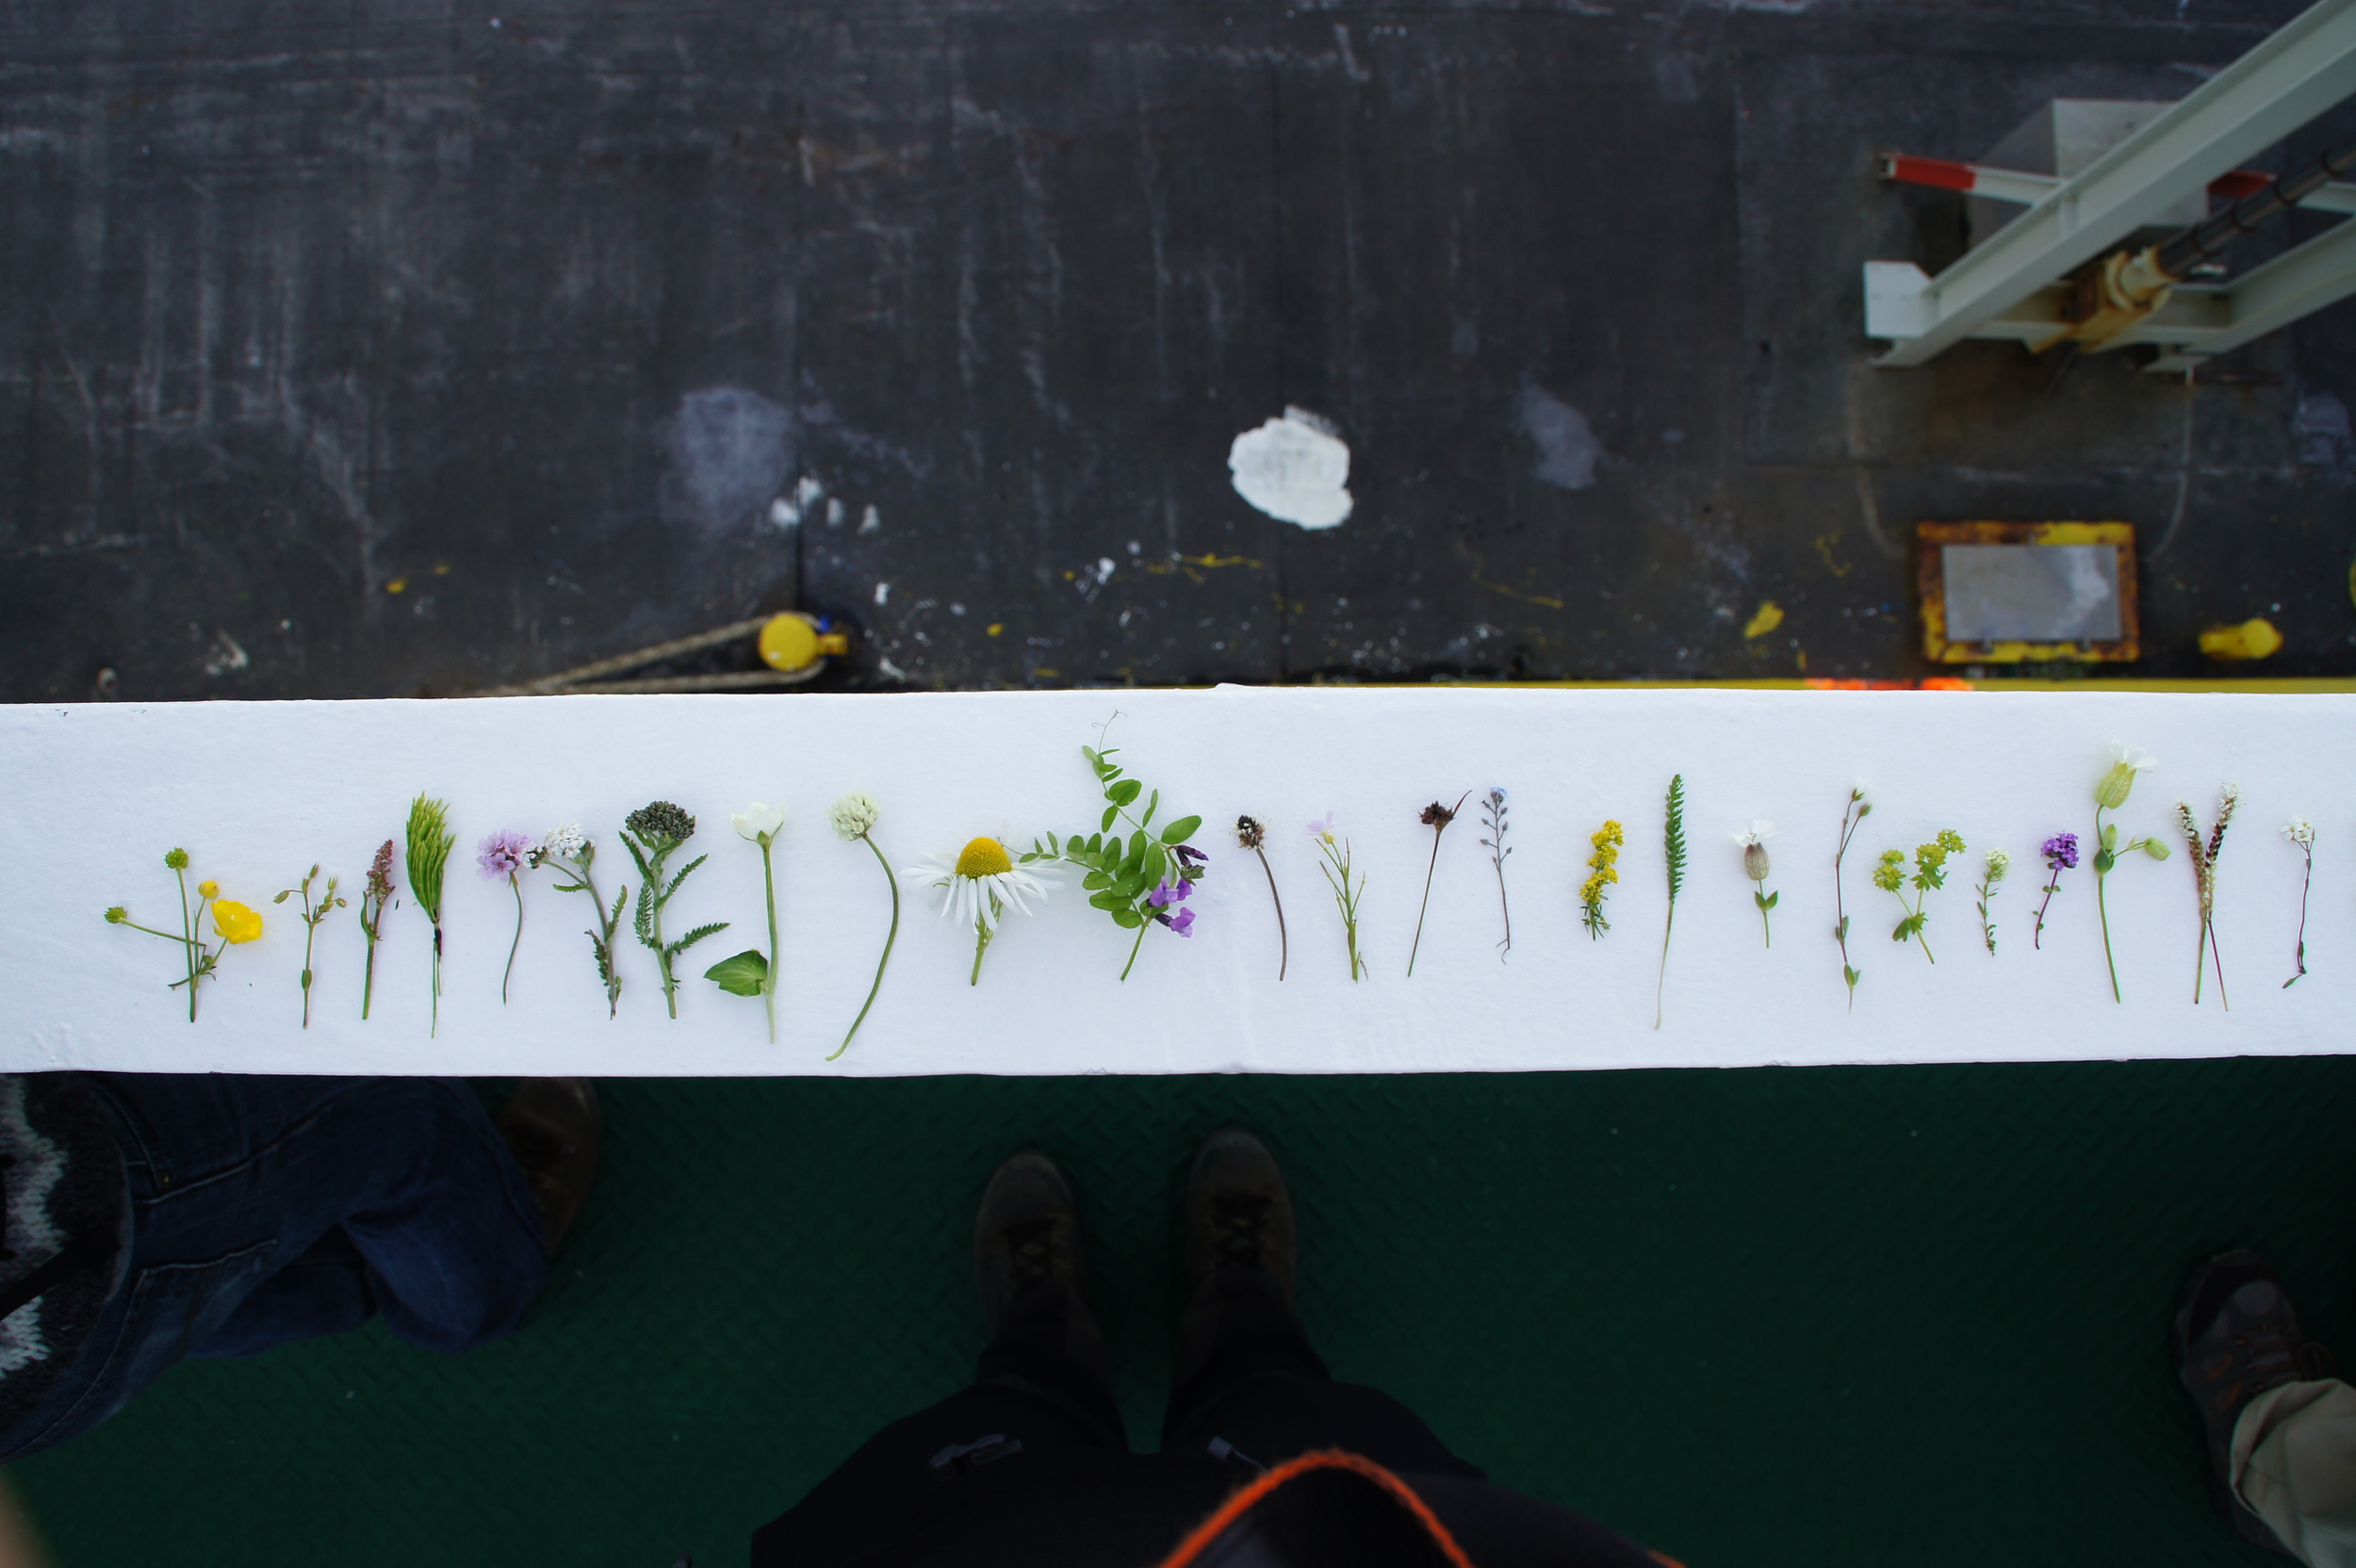 Once aboard the ferry, I laid out my impressive collection of flowers. So many different kinds of tiny wildflowers.